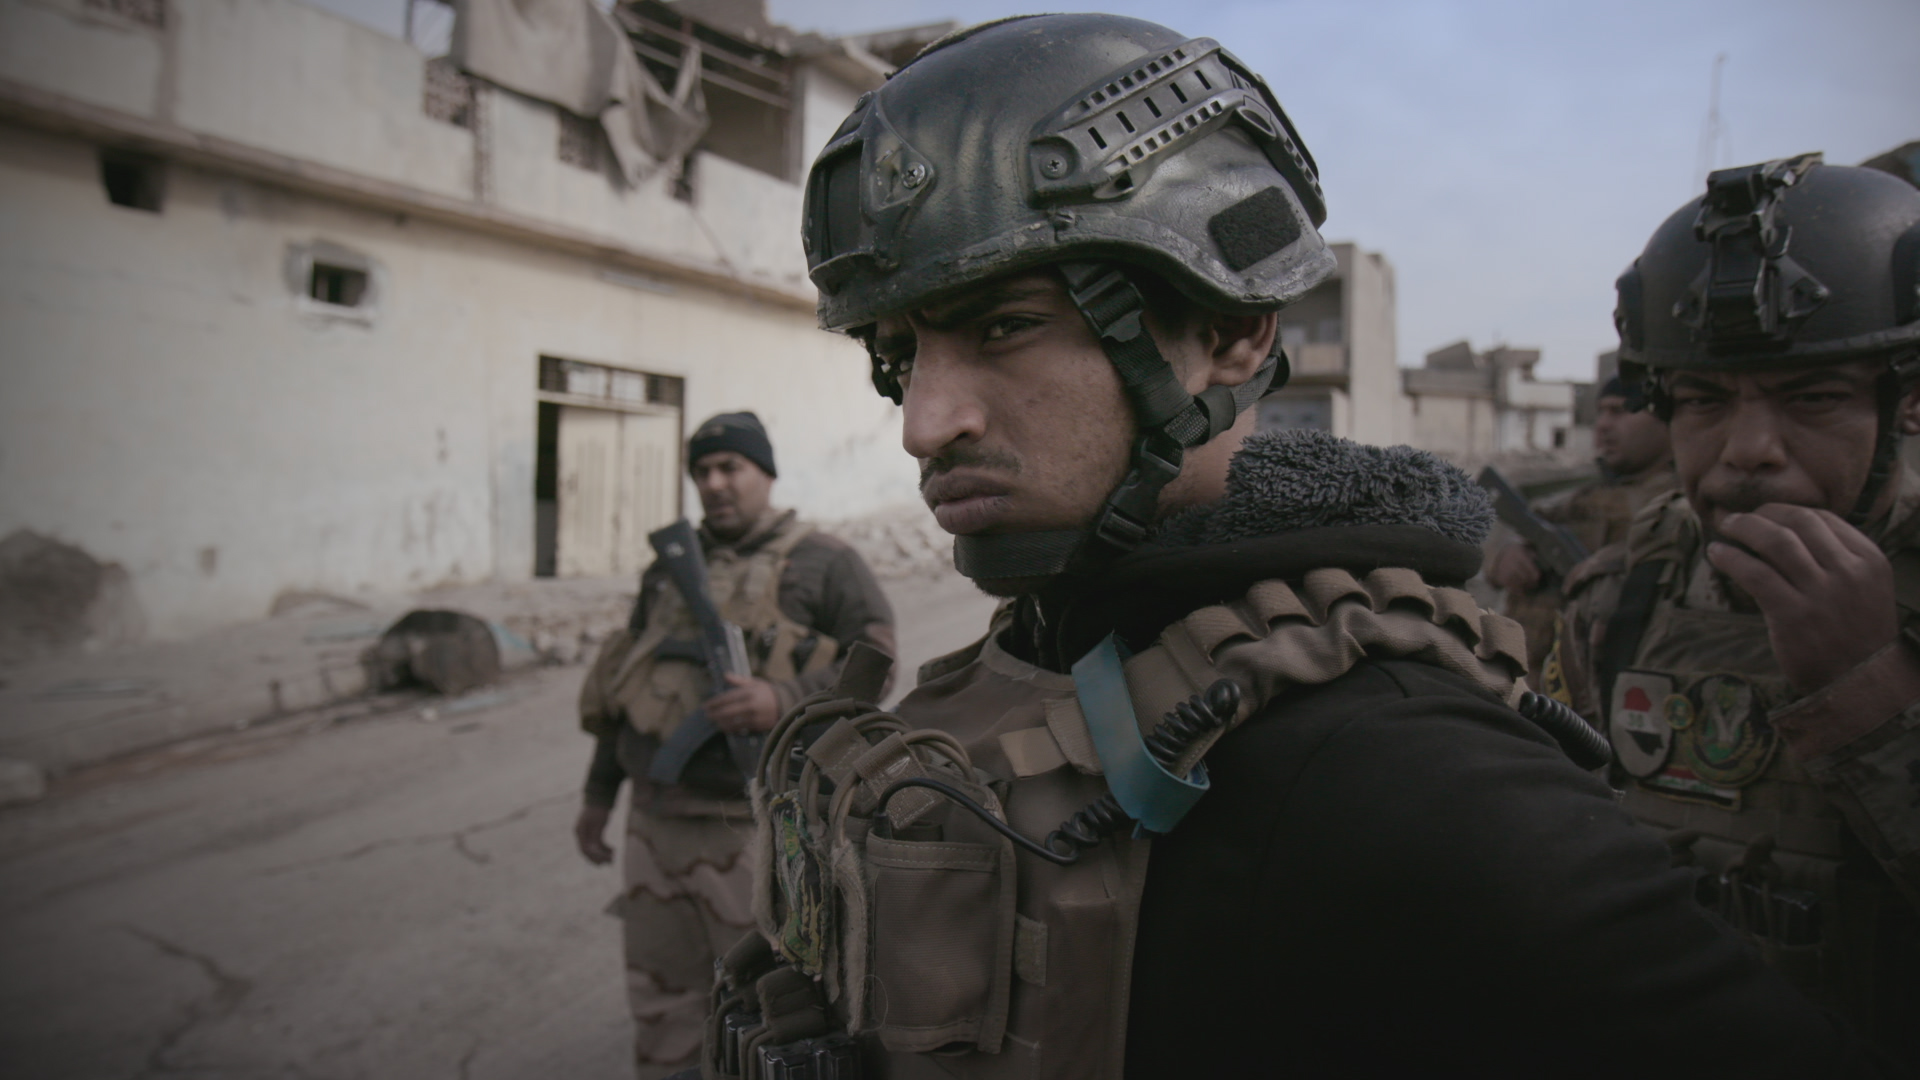 Mosul - With astonishing cinematography by Olivier Sarbil, the story of the fight to re-take Mosul after more than two years of ISIS rule. Winner of Broadcast Award for Best Documentary and Emmy for Best Cinematography.Read More